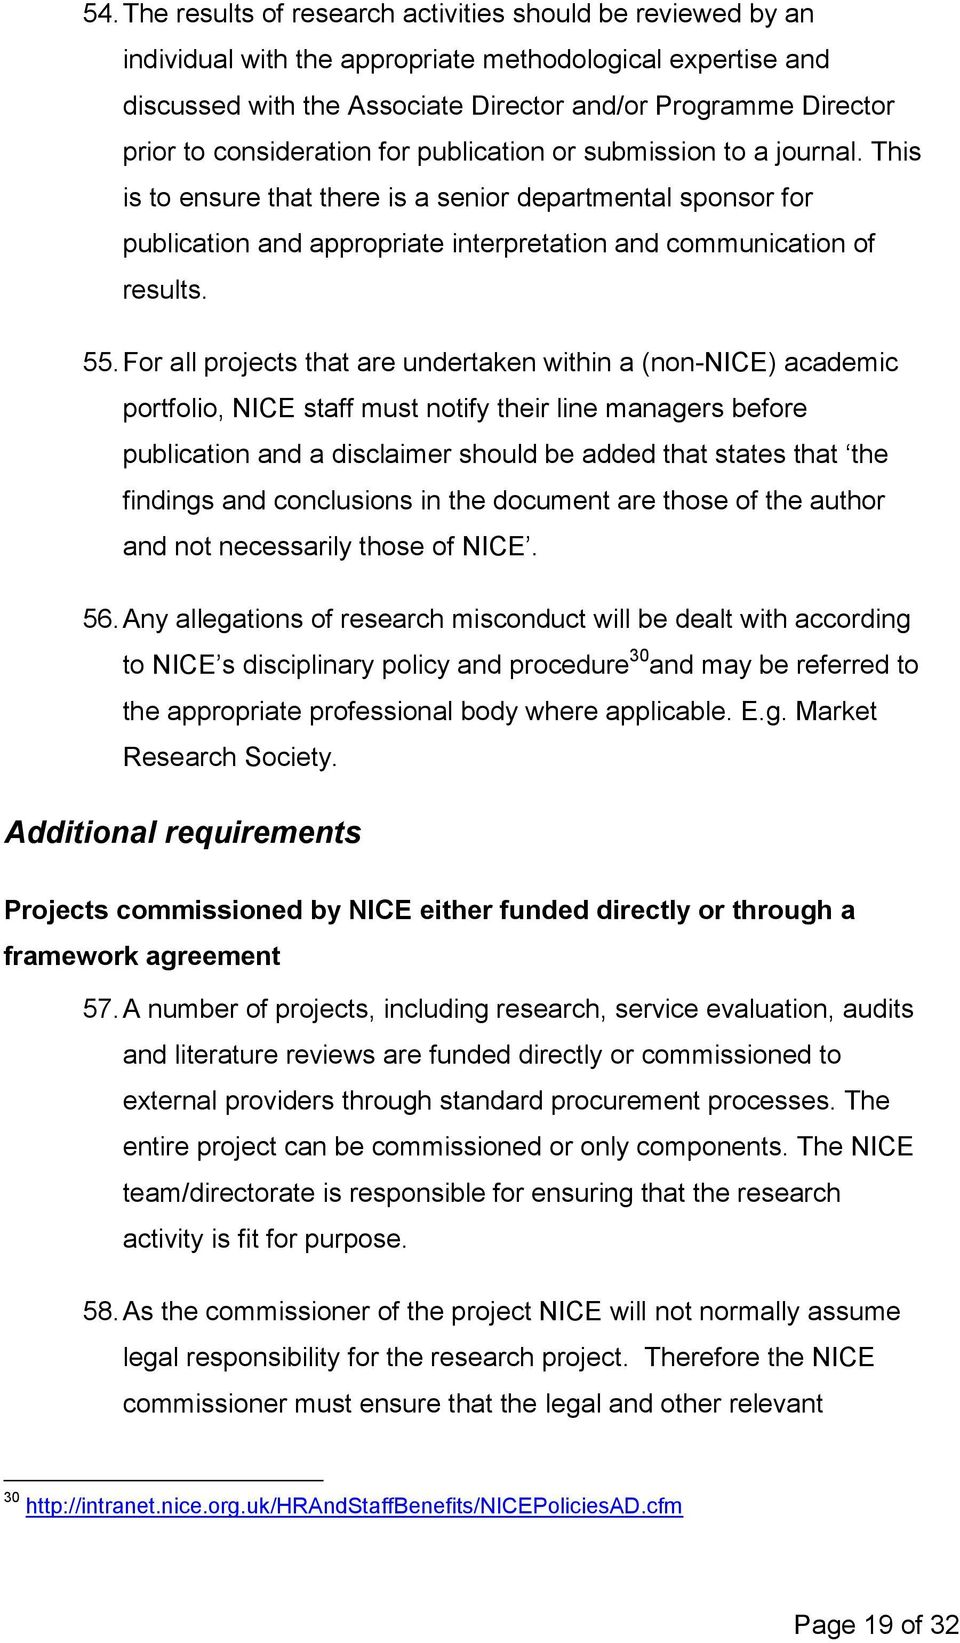 For all projects that are undertaken within a (non-nice) academic portfolio, NICE staff must notify their line managers before publication and a disclaimer should be added that states that the